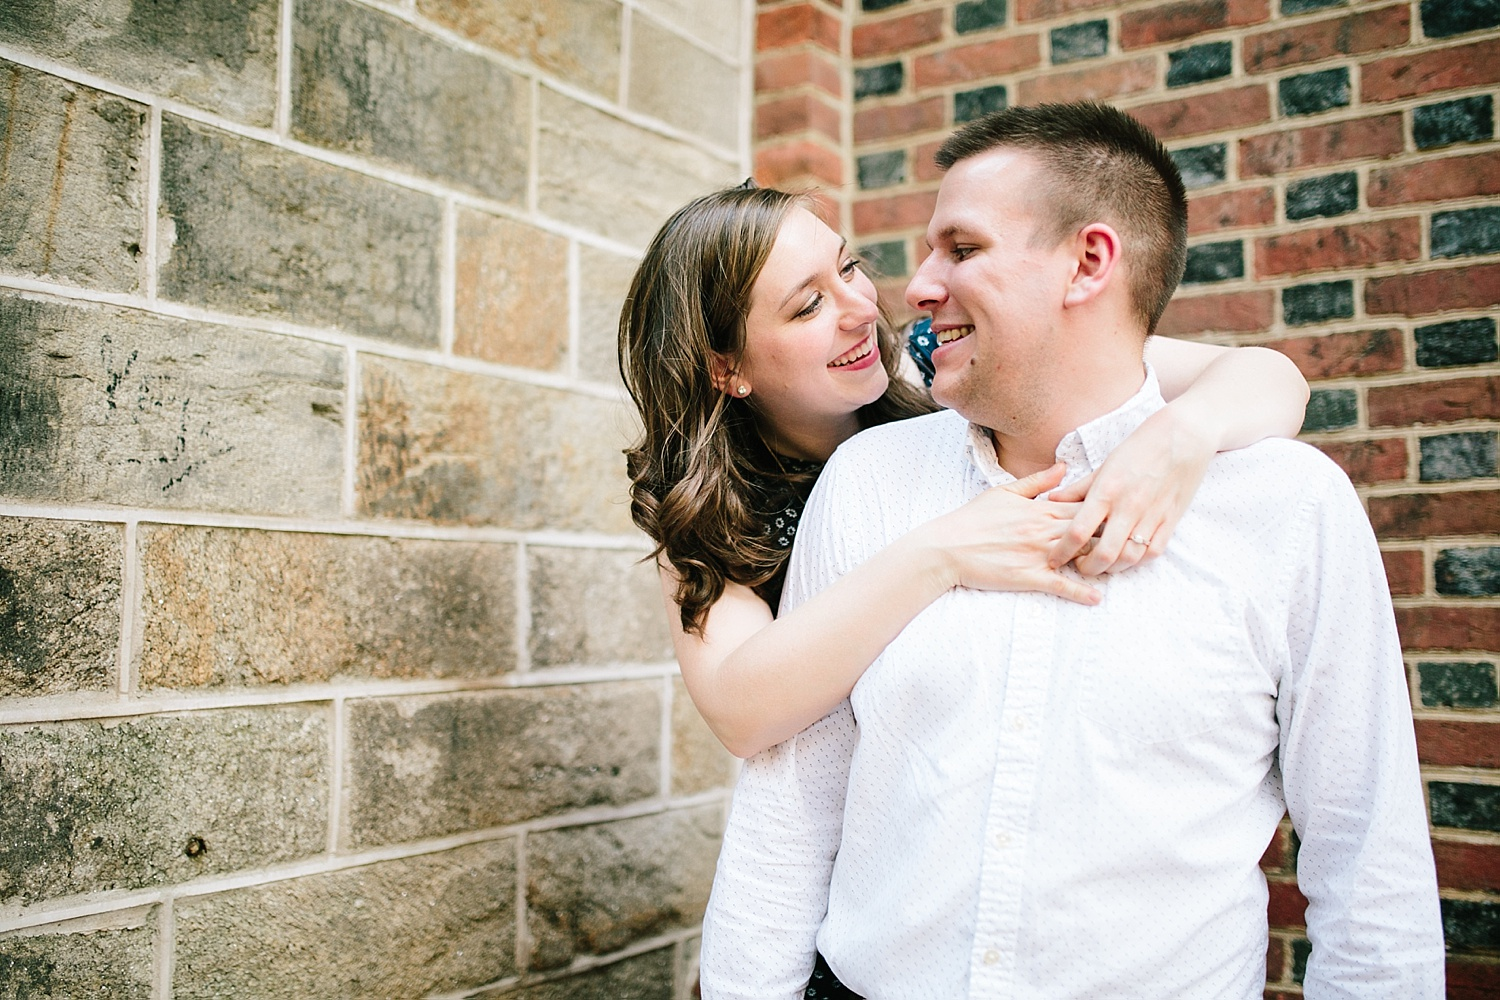 lizandbrandon_oldcity_philadelphia_elfrethsalley_engagement_session_image020.jpg